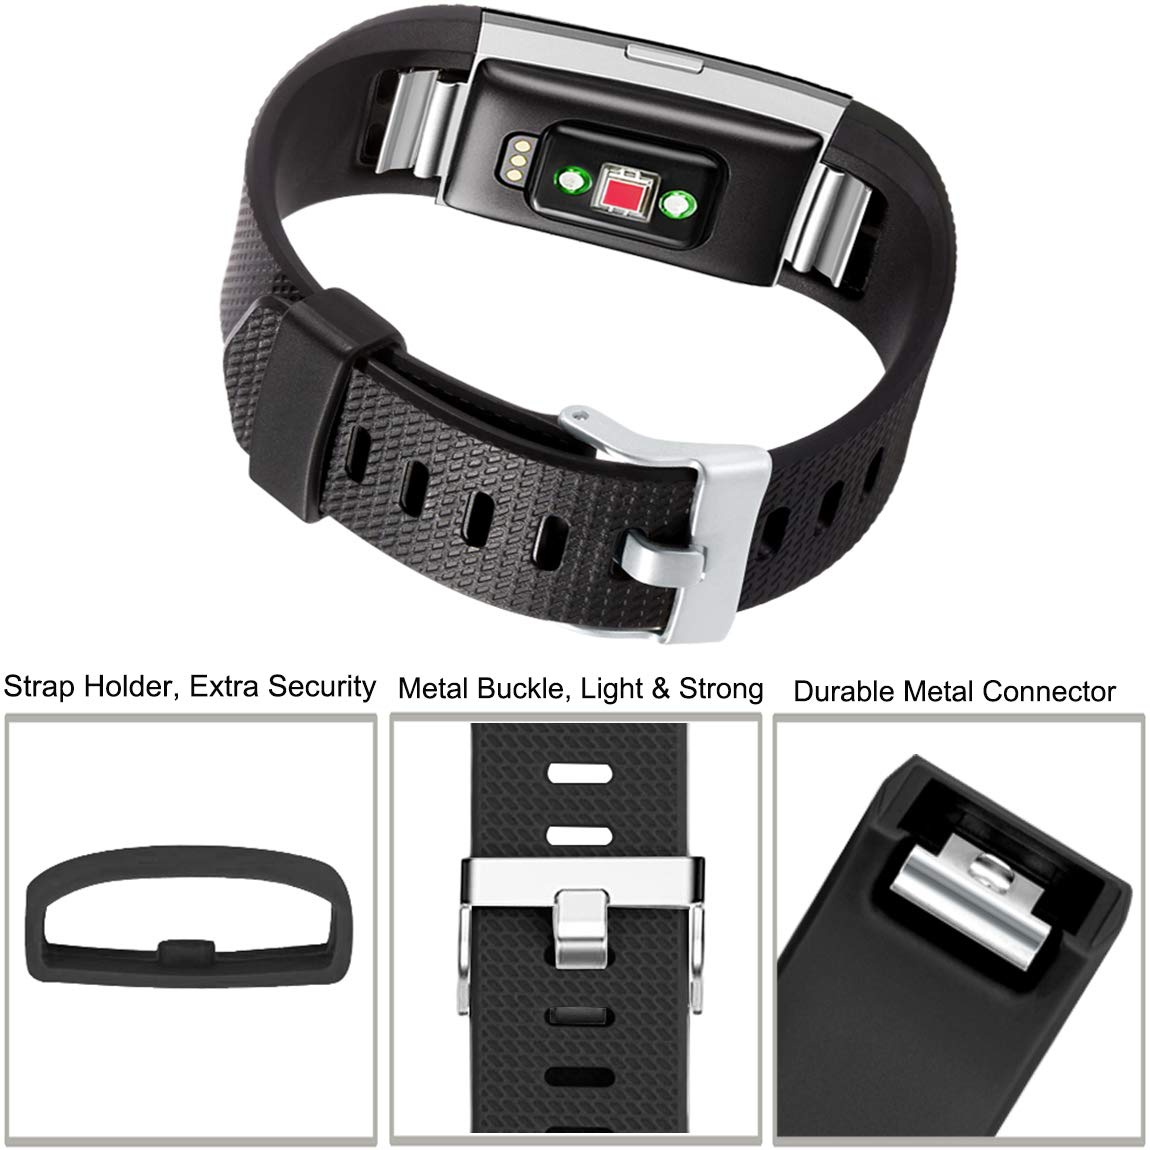 Communication on this topic: MH Review: Fitbit Charge 3 - Should , mh-review-fitbit-charge-3-should/